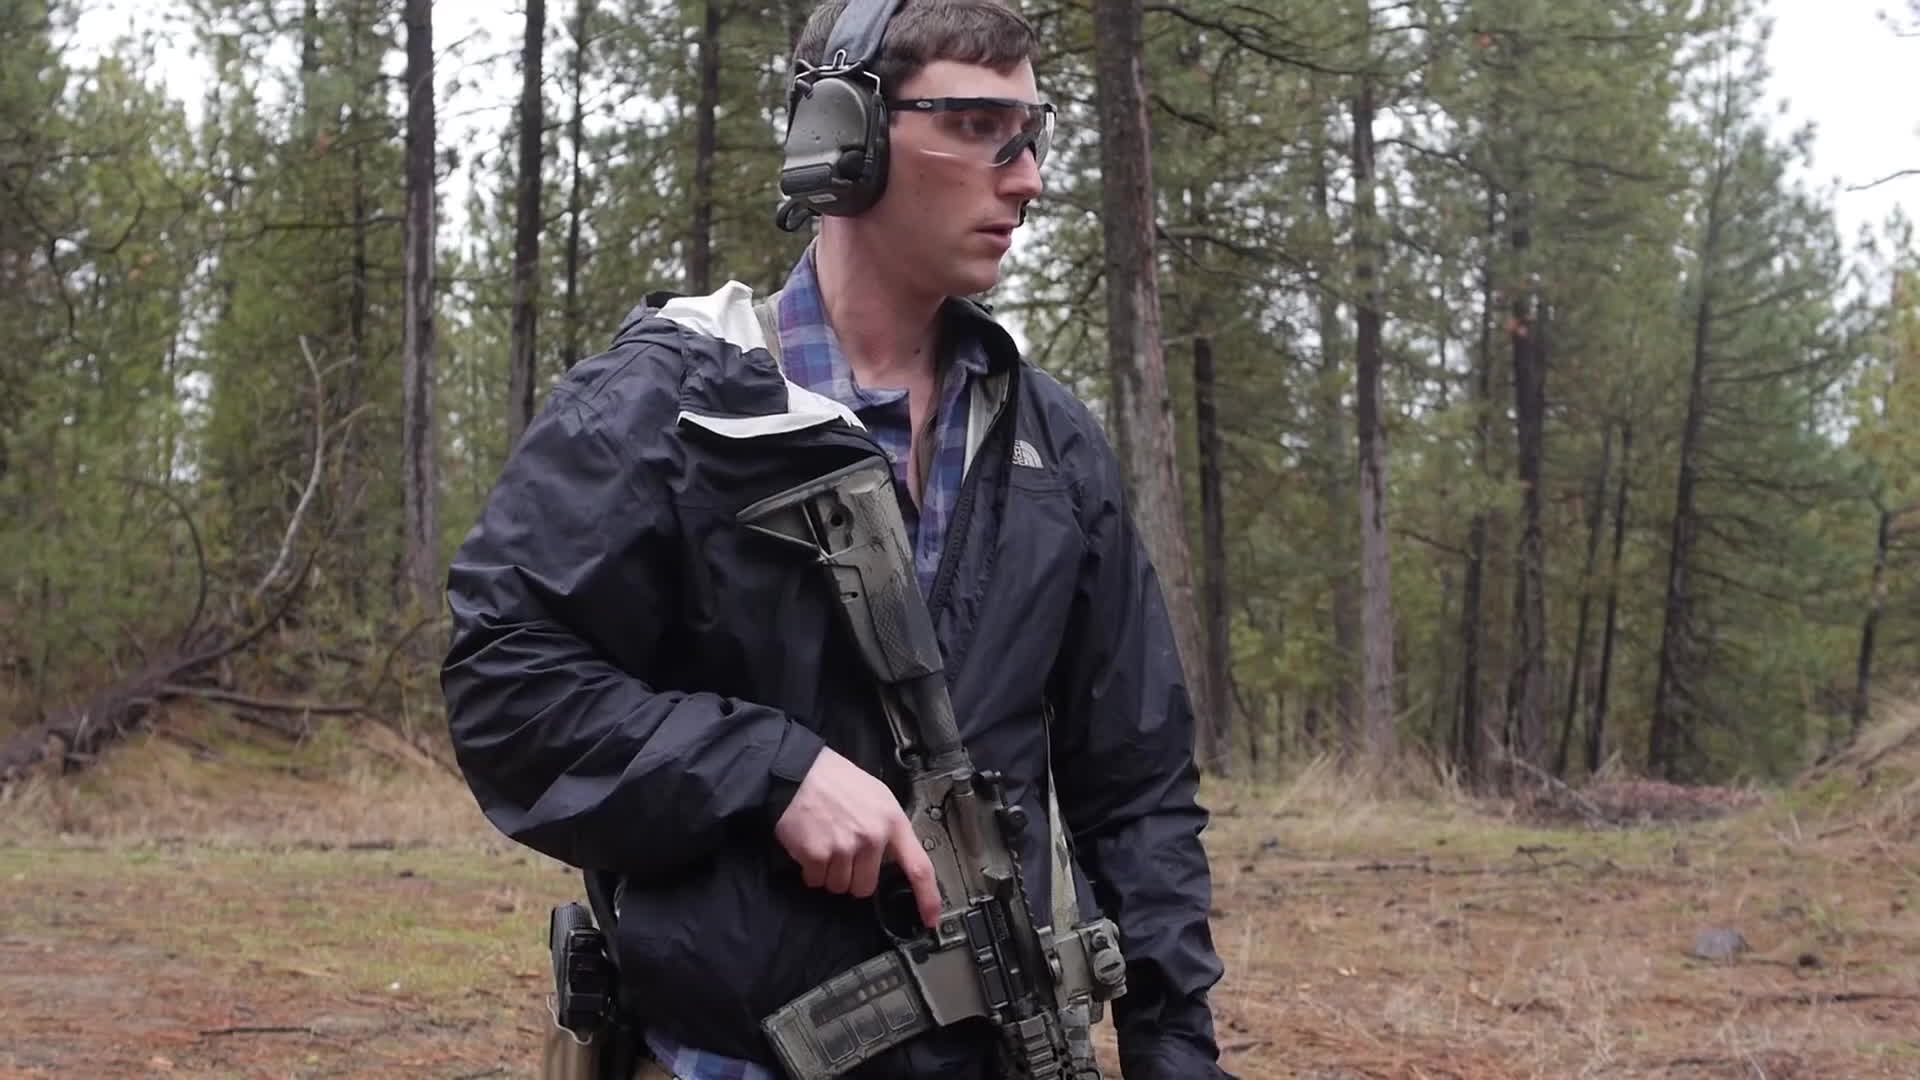 collateral, collateral drill, tom cruise, Firearms drills: Collateral drill (transition and cadence) GIFs